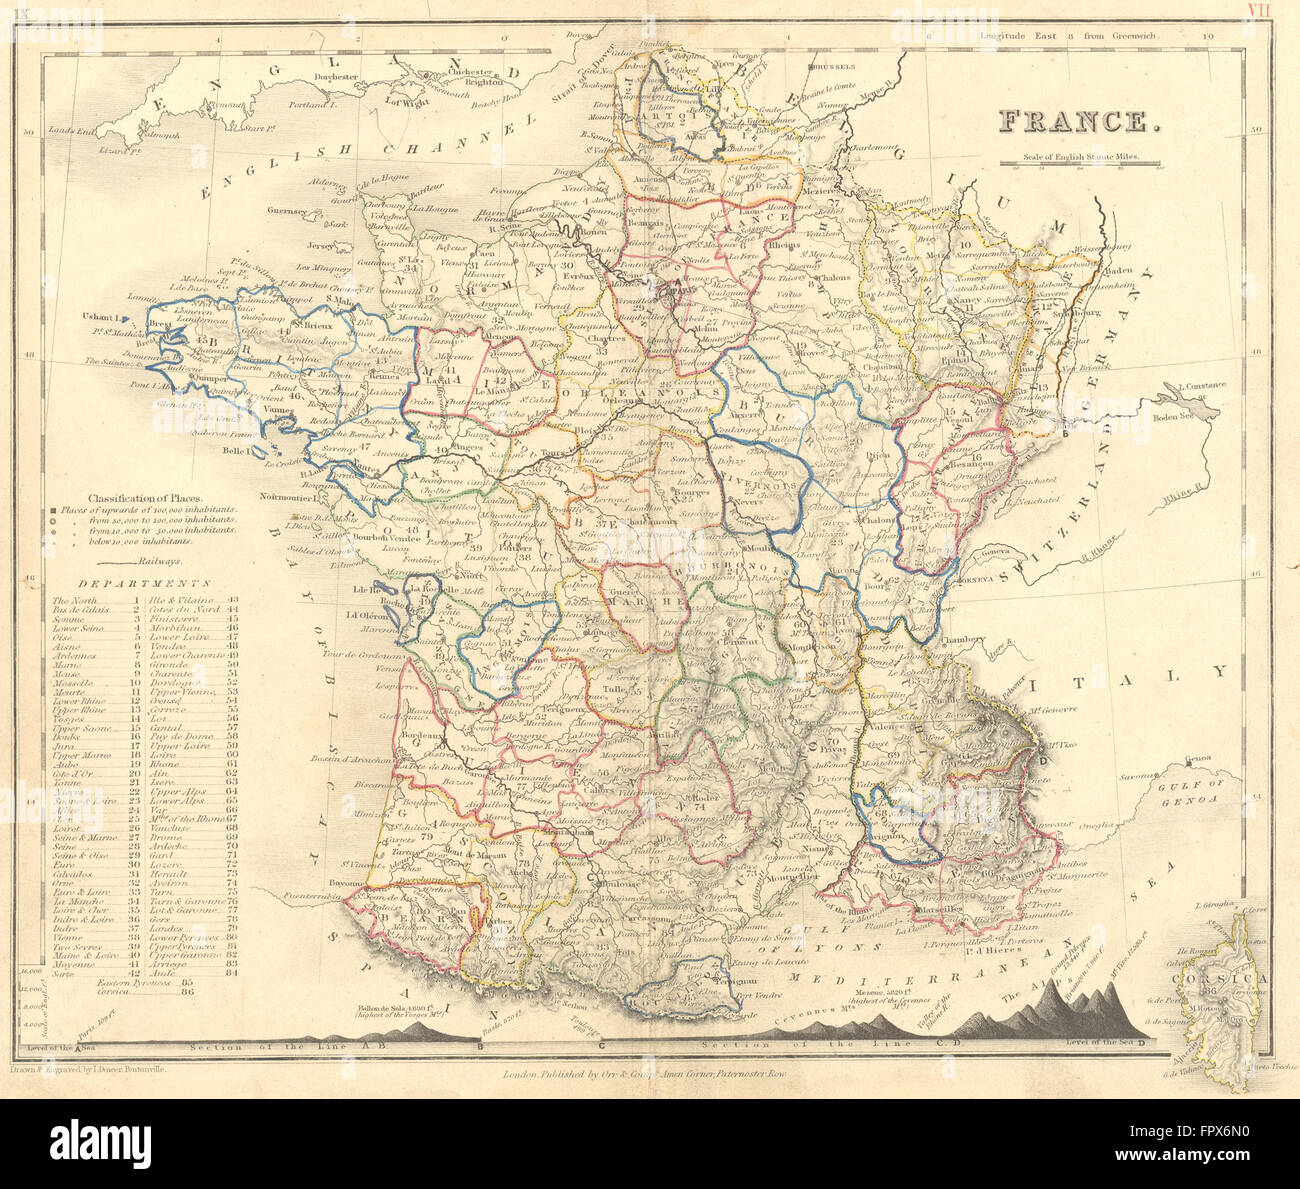 Map Of France With Mountains.France Dower Mountains 1850 Antique Map Stock Photo 100150316